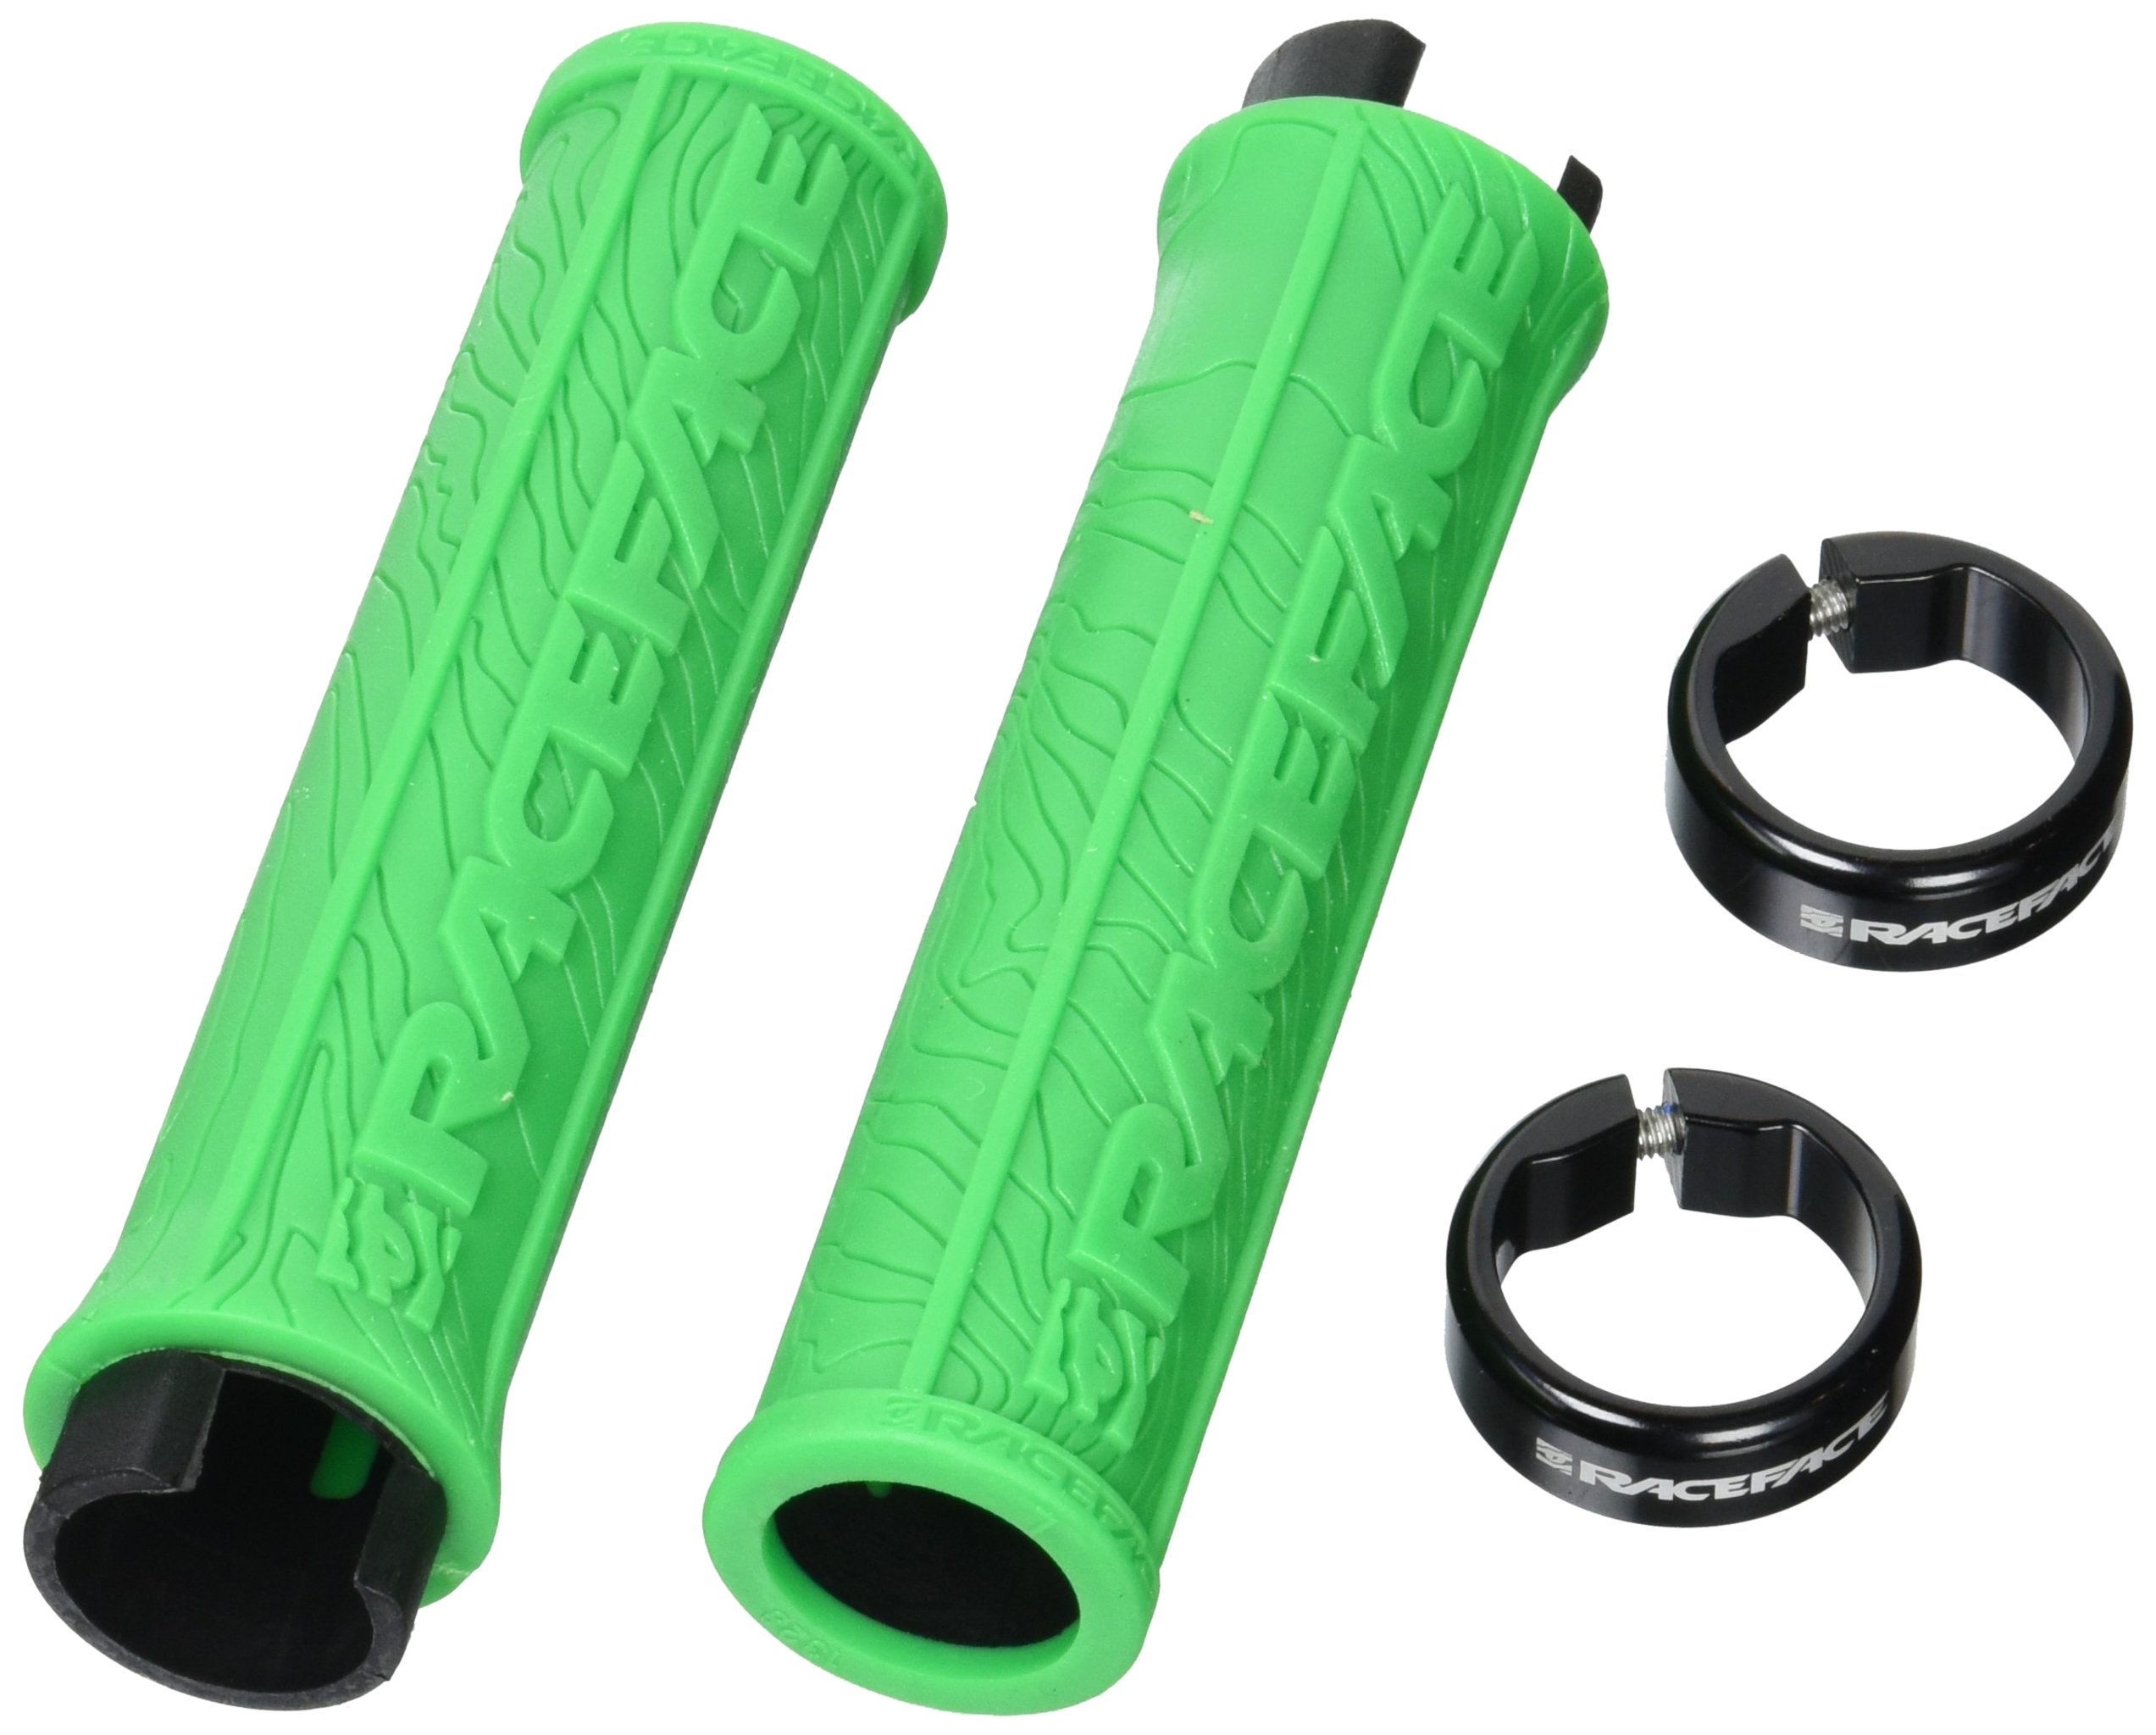 RaceFace Half Nelson Locking Grip, Green by RaceFace